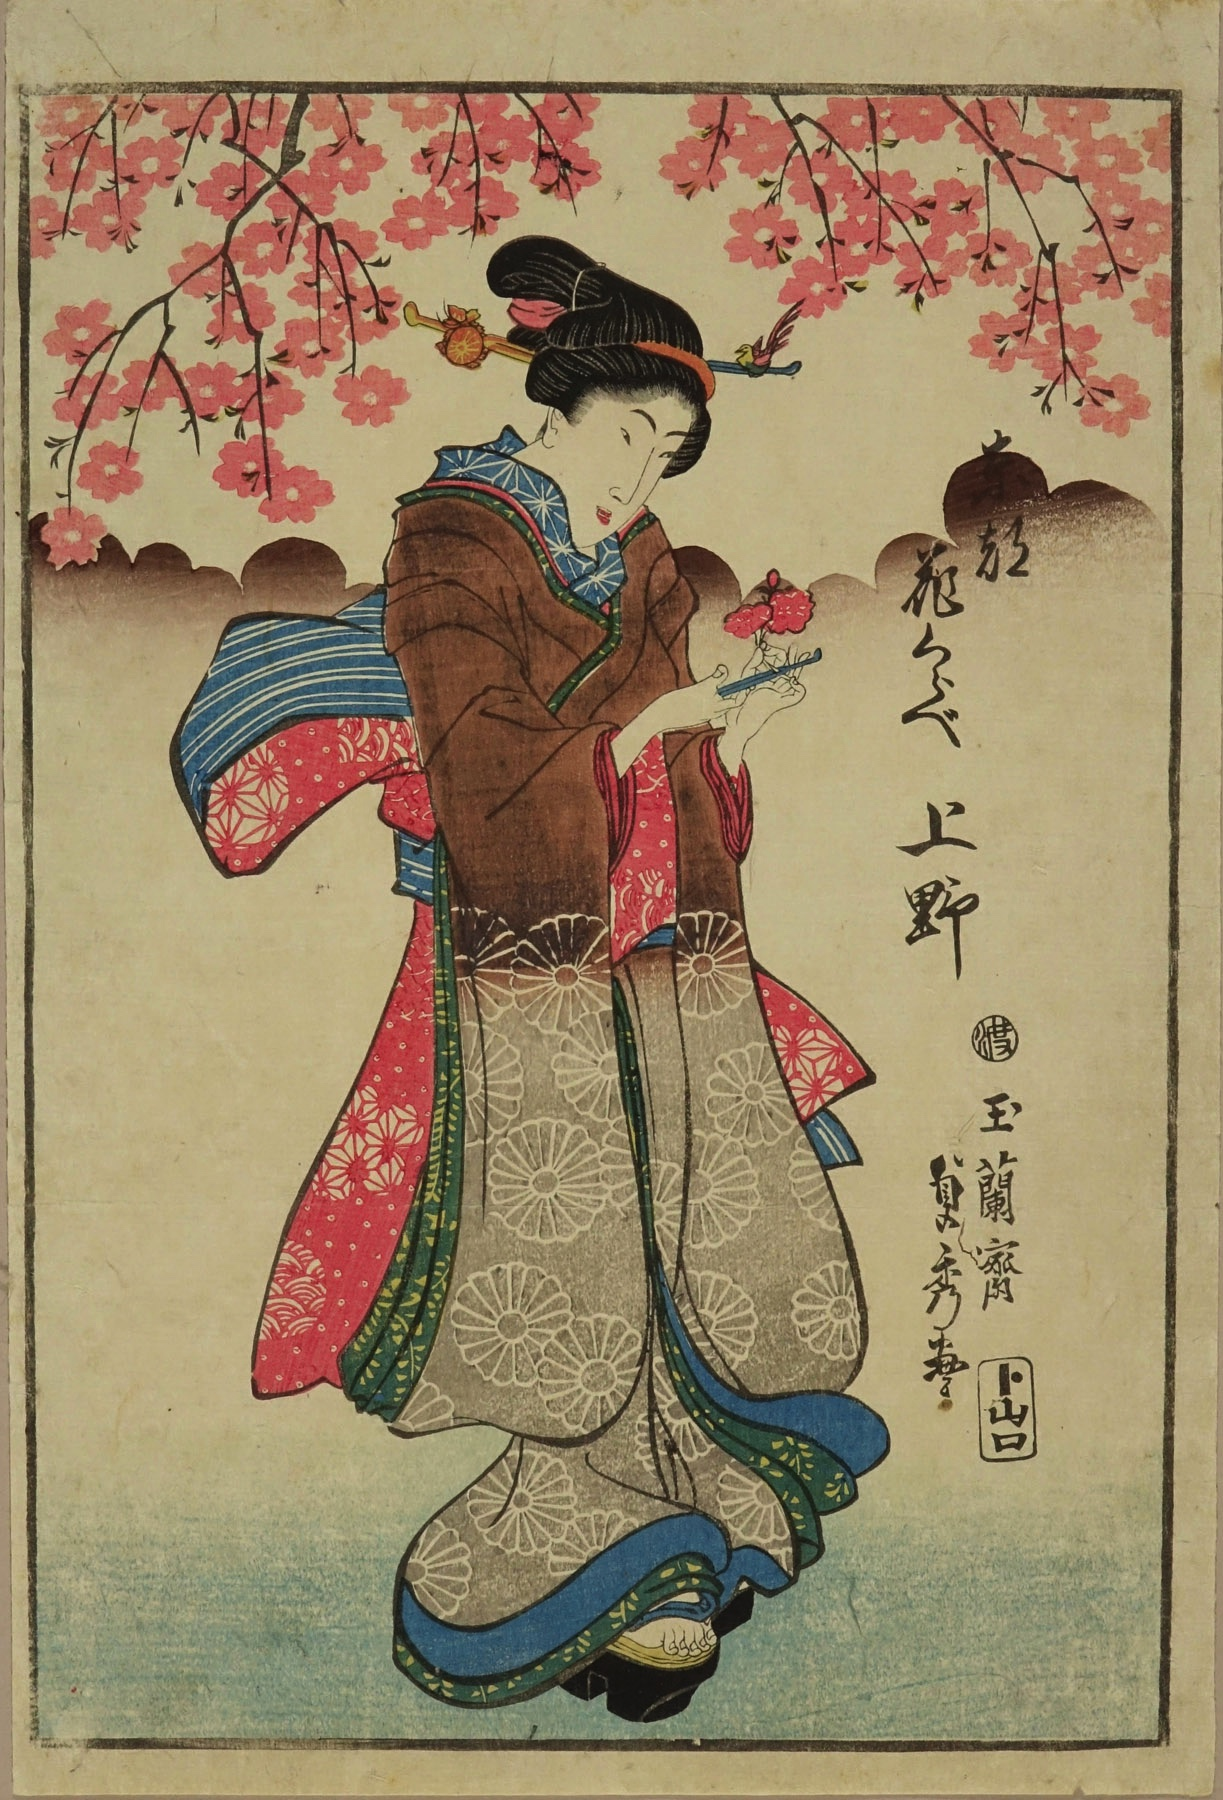 SADAHIDE Beauty decorating hairpin with a spray of cherry blossom, subtitled Ueno, from <i>Toto hana kurabe</i> (Comparison of flower of the eastern capital)